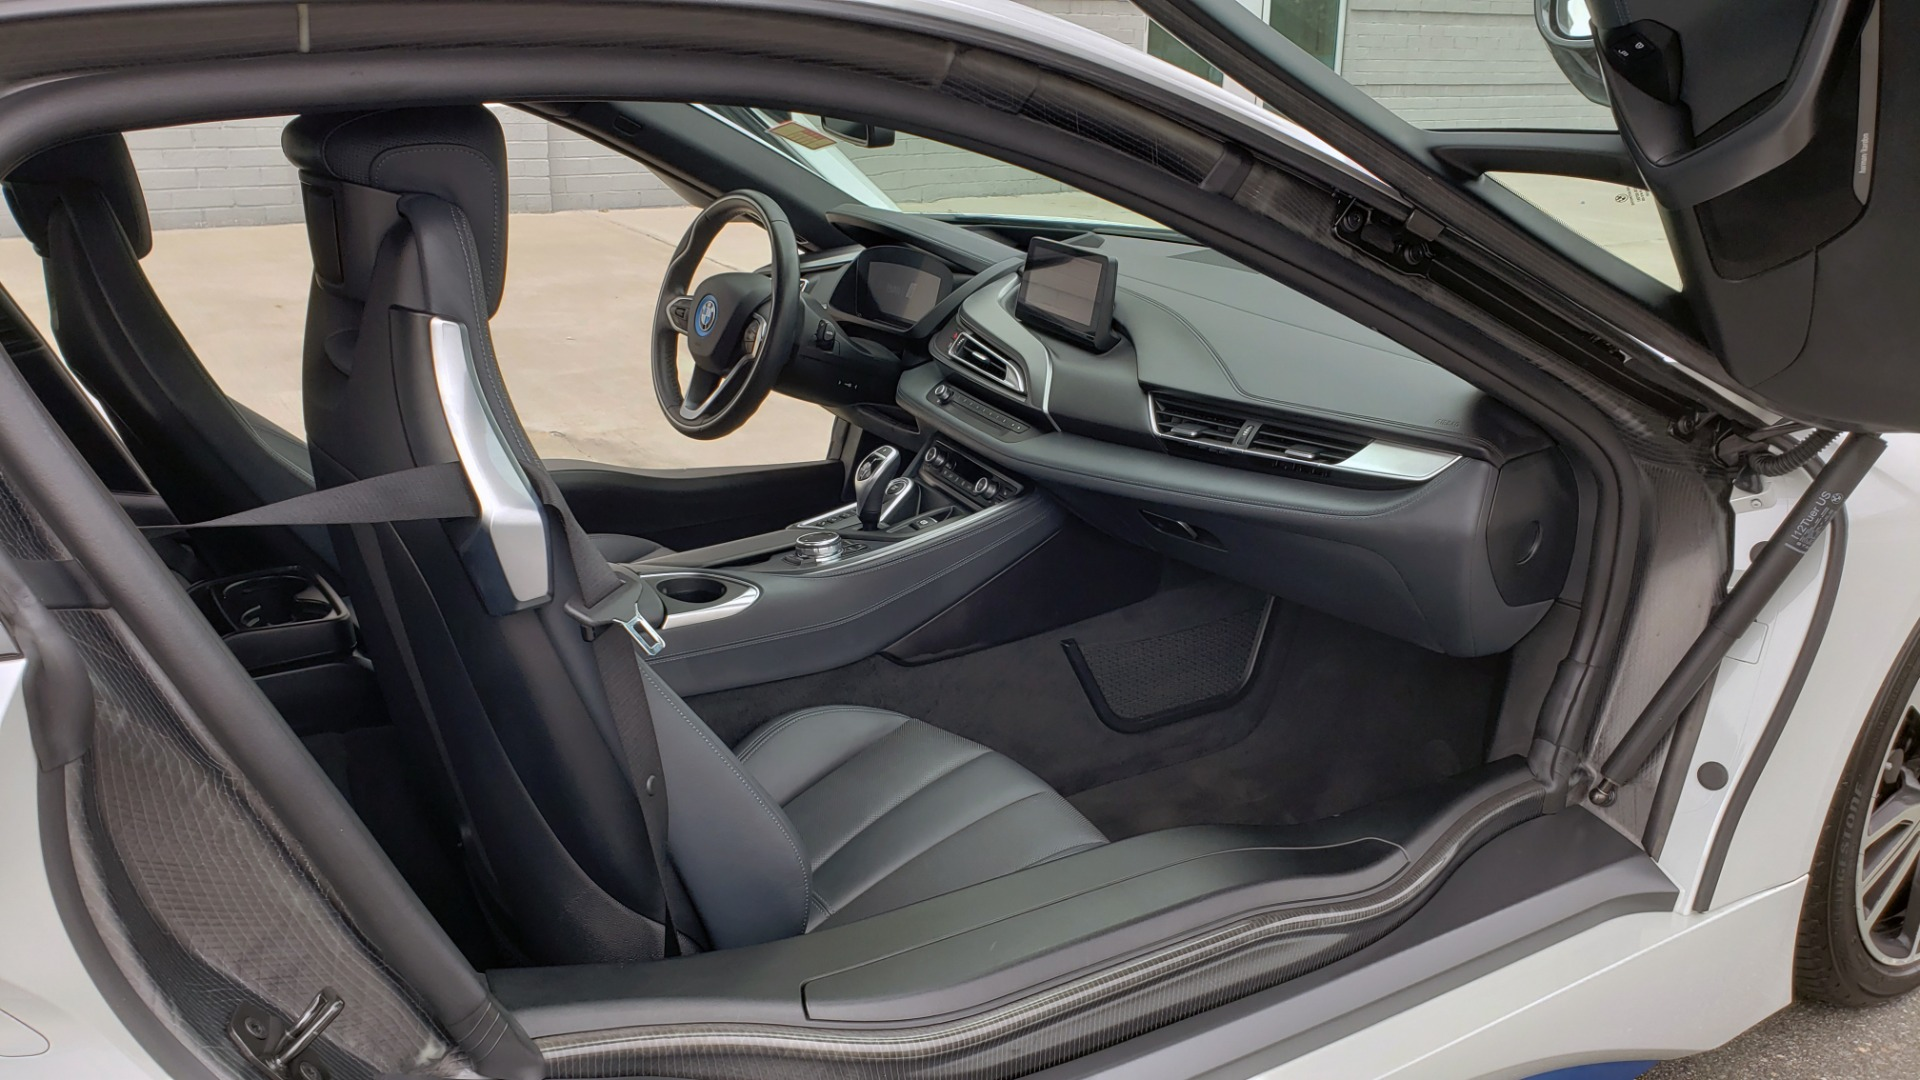 Used 2016 BMW i8 COUPE / GIGA WORLD / NAV / HUD / 20IN WHEELS / REARVIEW for sale Sold at Formula Imports in Charlotte NC 28227 19